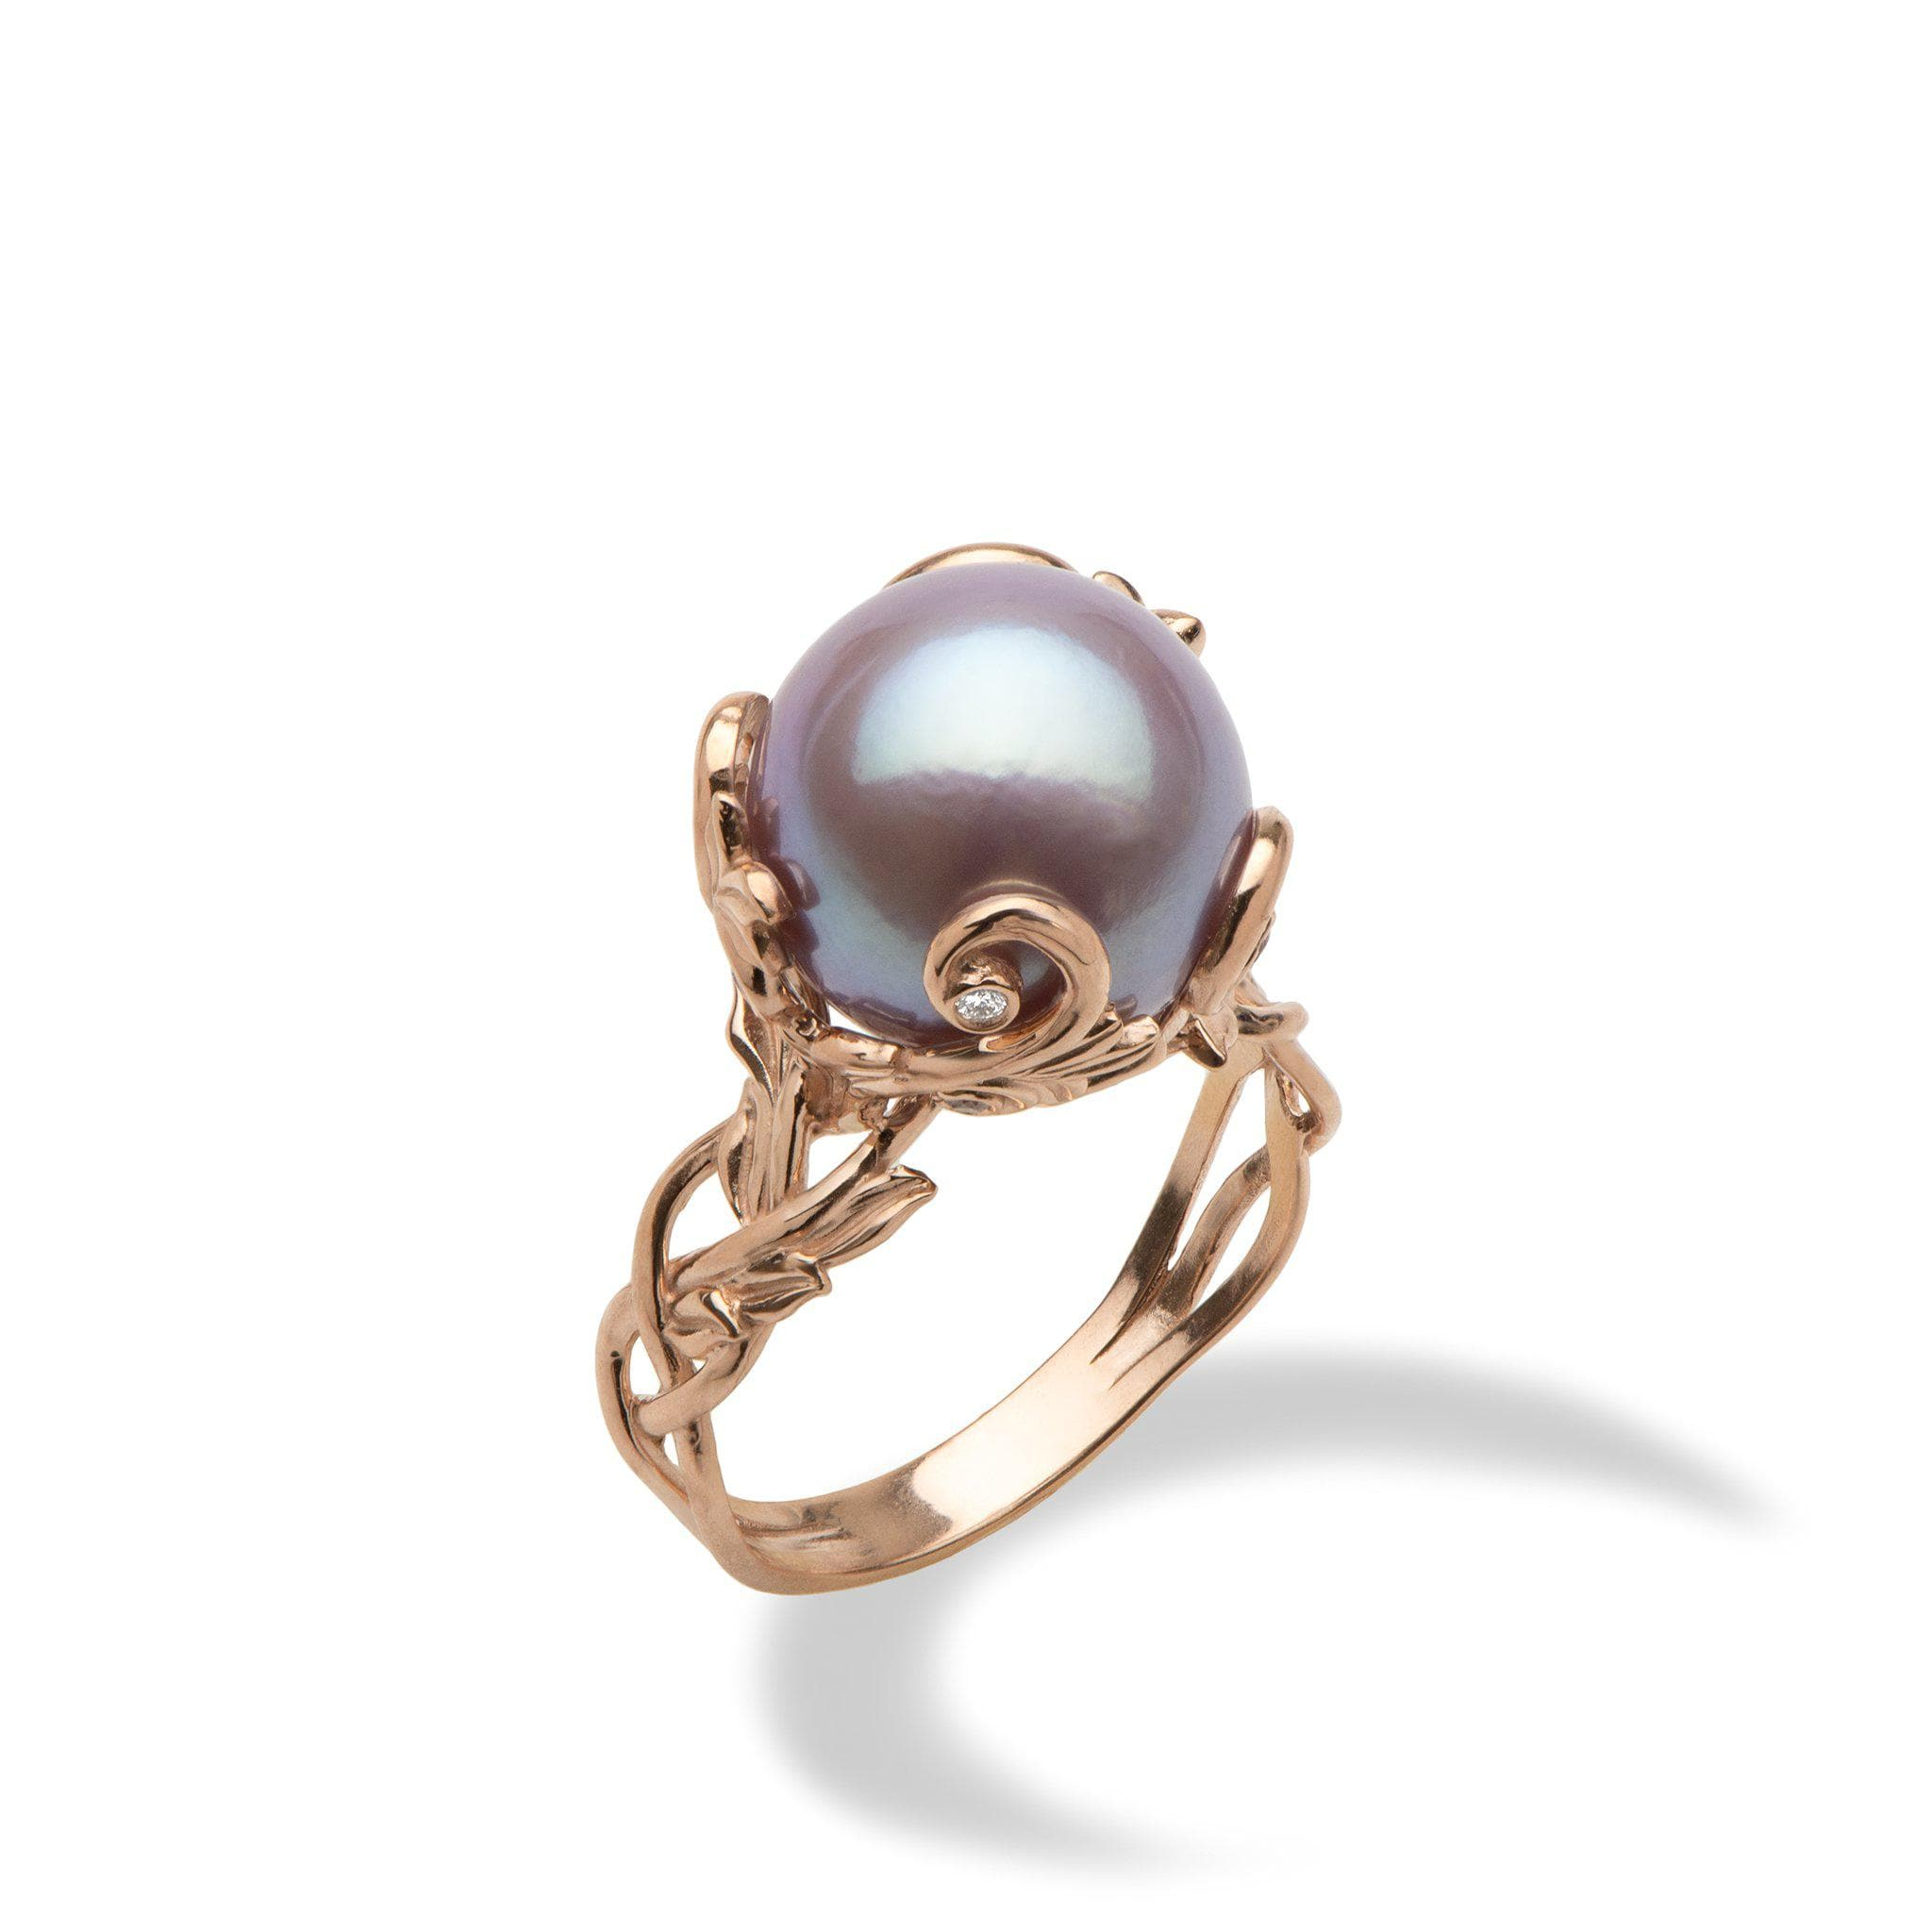 63fcec956 Lilac Freshwater Pearl Ring with Diamonds in 14K Rose Gold (11 ...